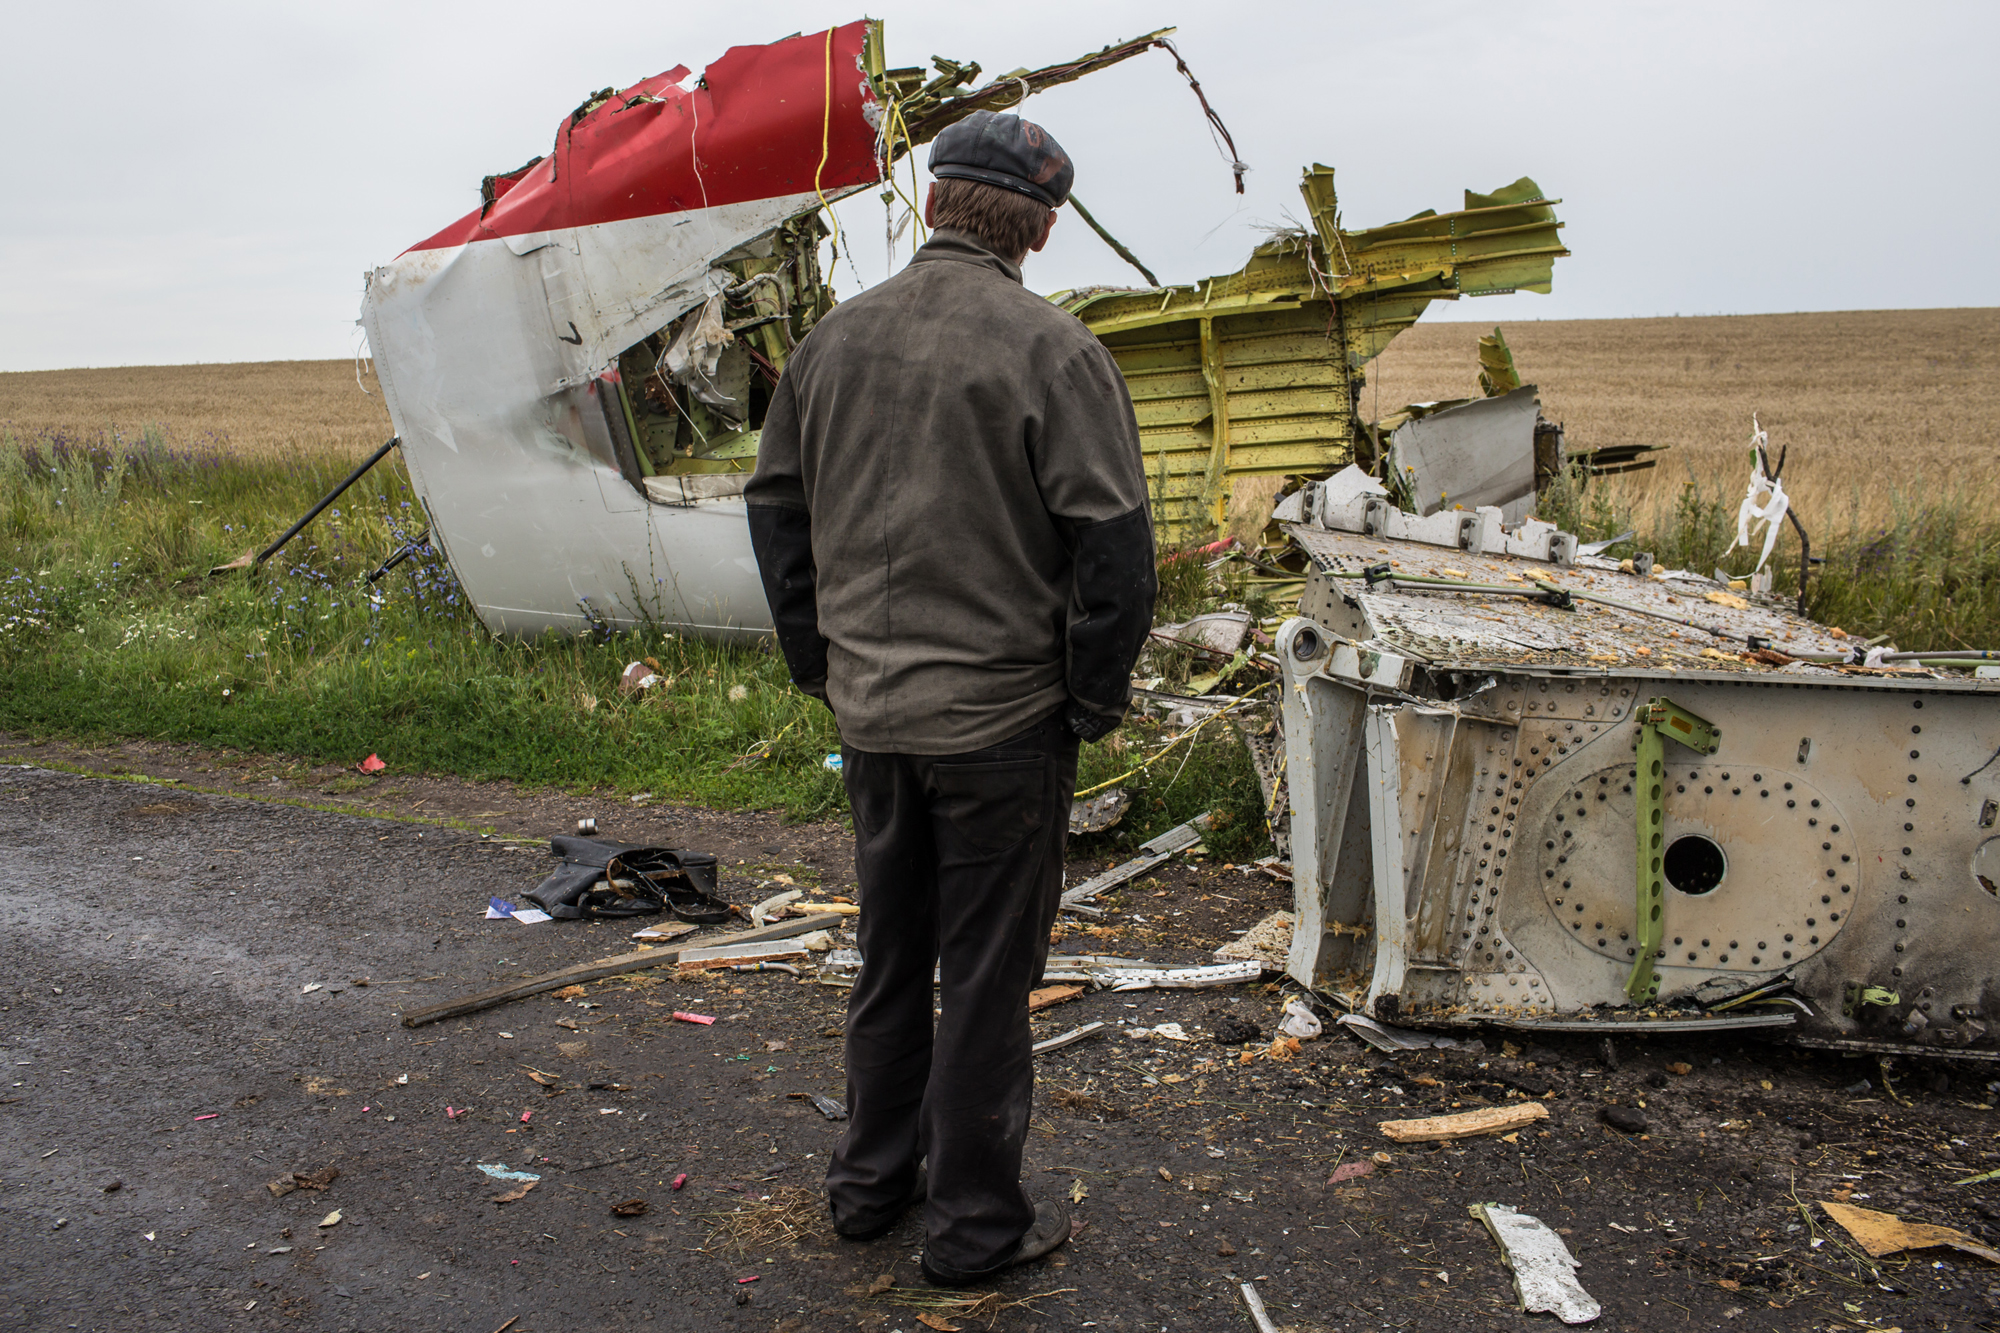 A man looks at the wreckage of passenger plane Malaysia Airlines flight MH17 on July 18, 2014 in Grabovka, Ukraine.